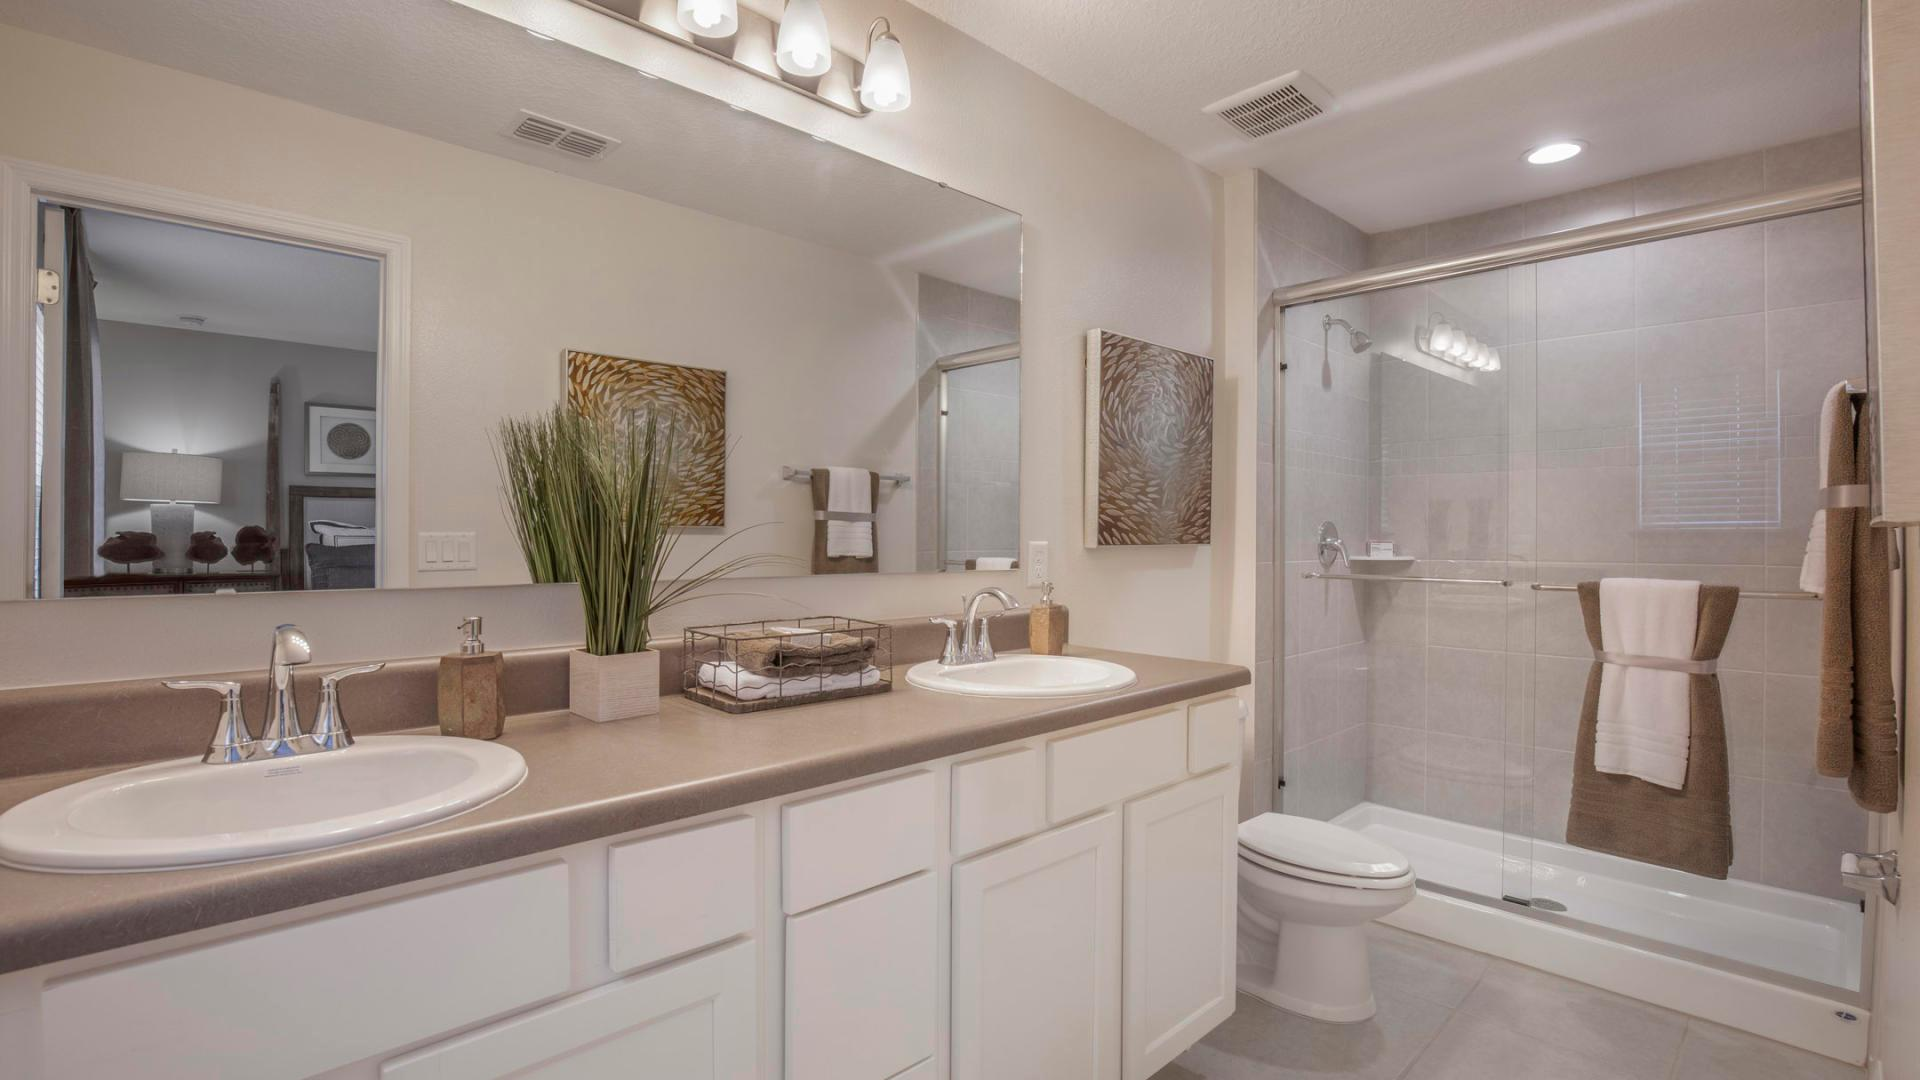 Bathroom featured in the St. Thomas By Maronda Homes in Orlando, FL